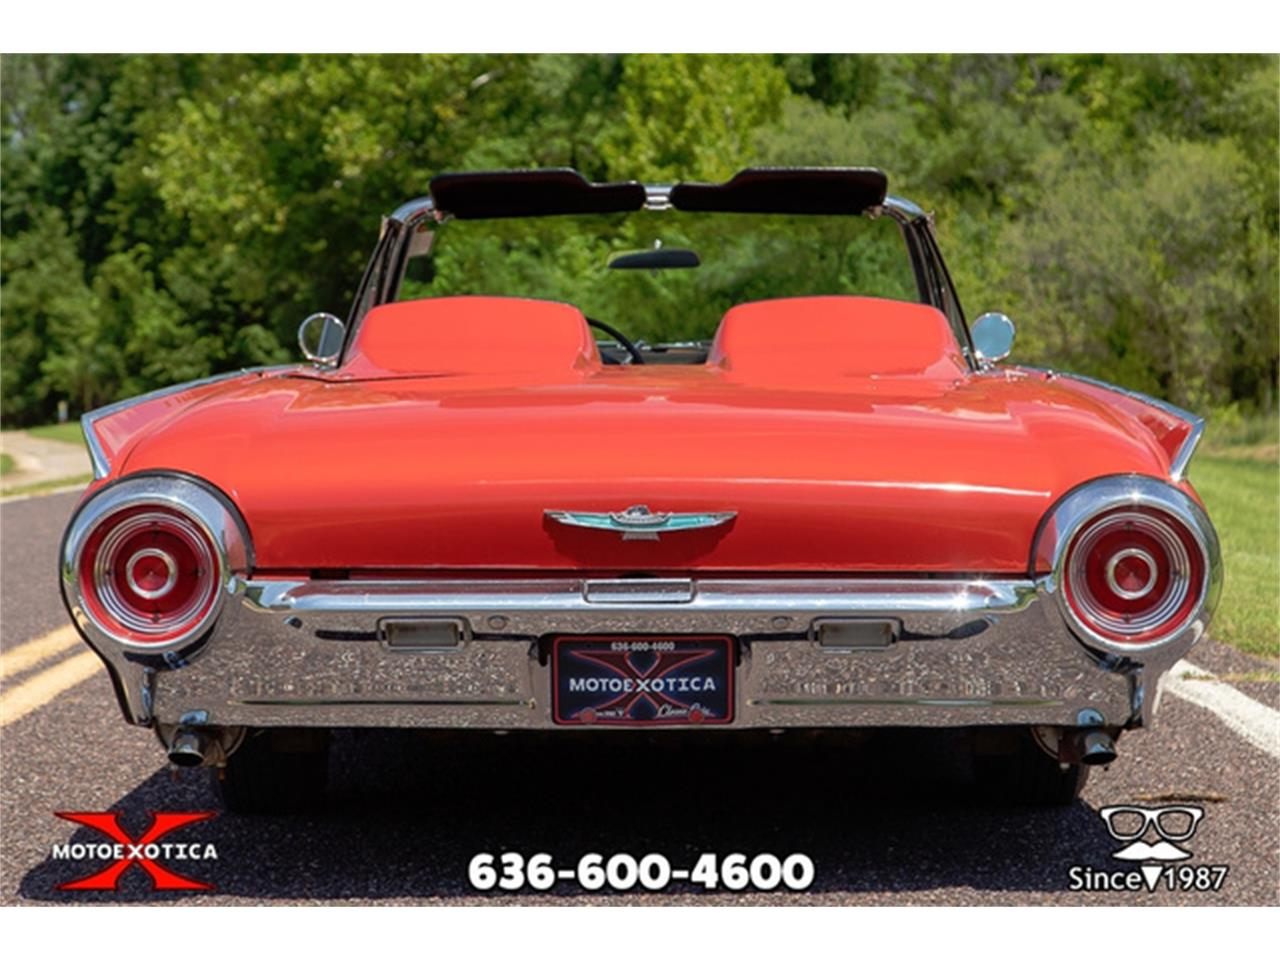 Large Picture of '62 Ford Thunderbird located in Missouri - $27,500.00 - QXLJ